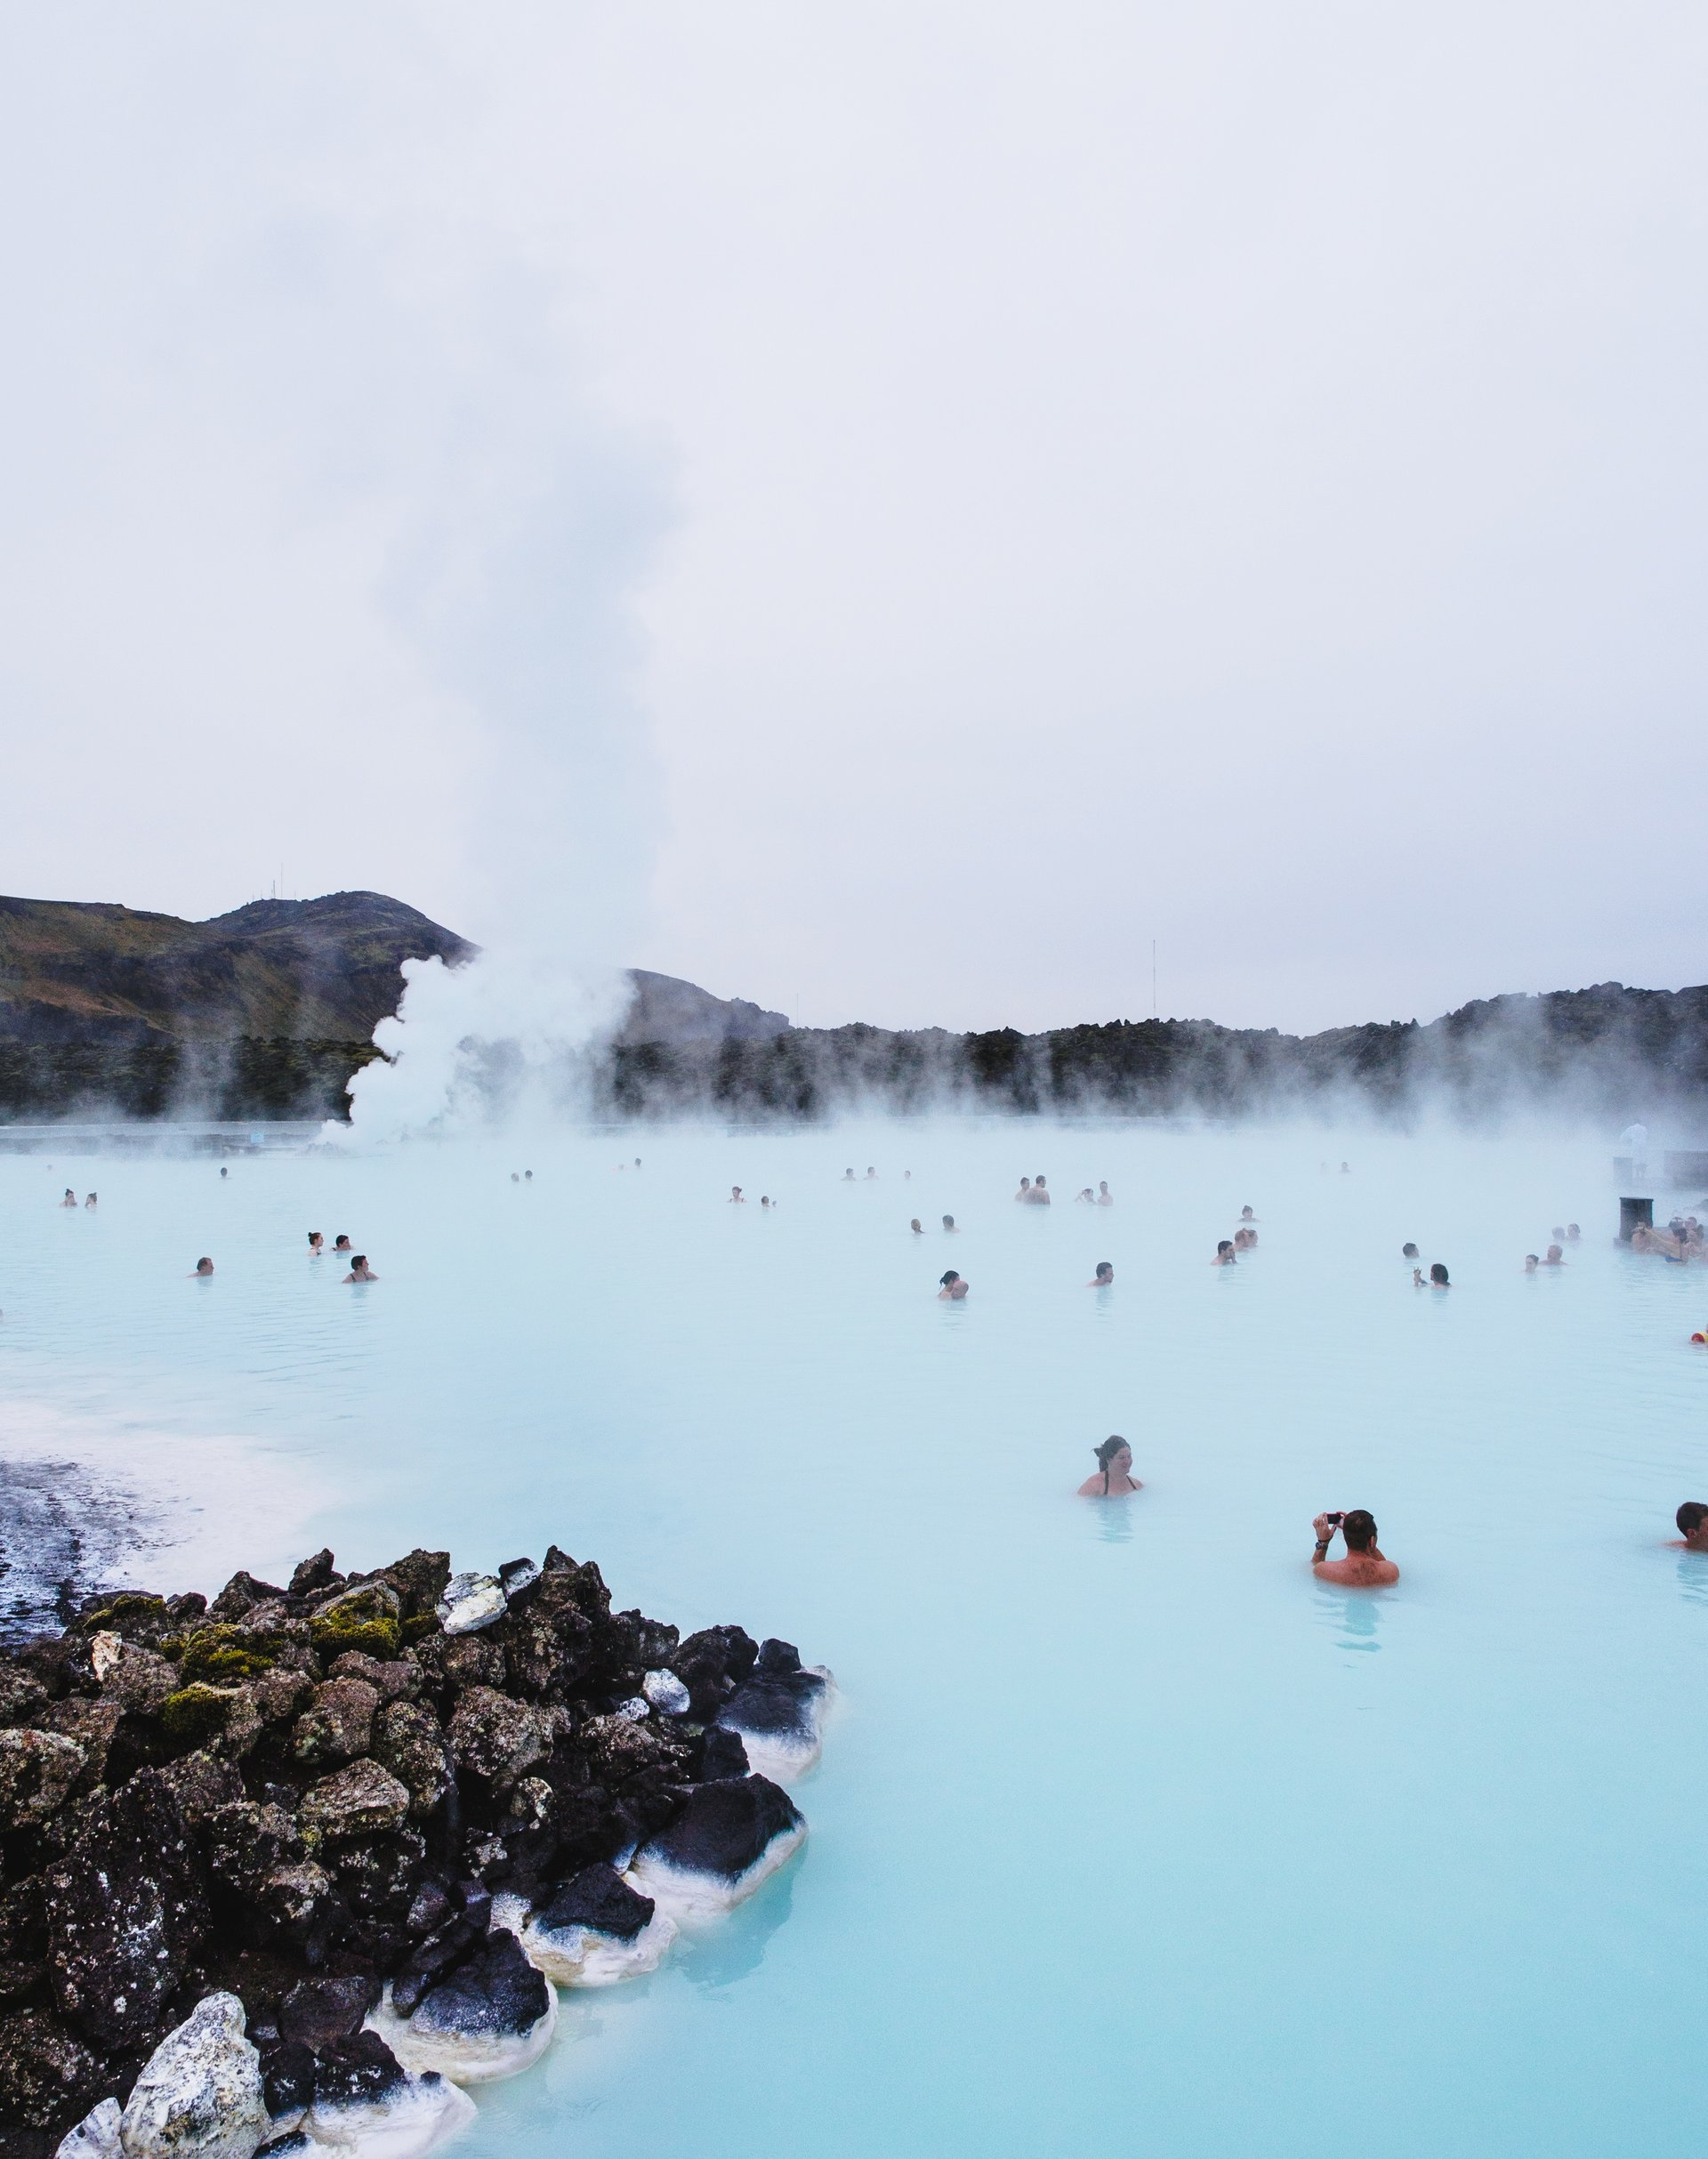 Blue Lagoon Geothermal Spa in Iceland 2019 - Best Time